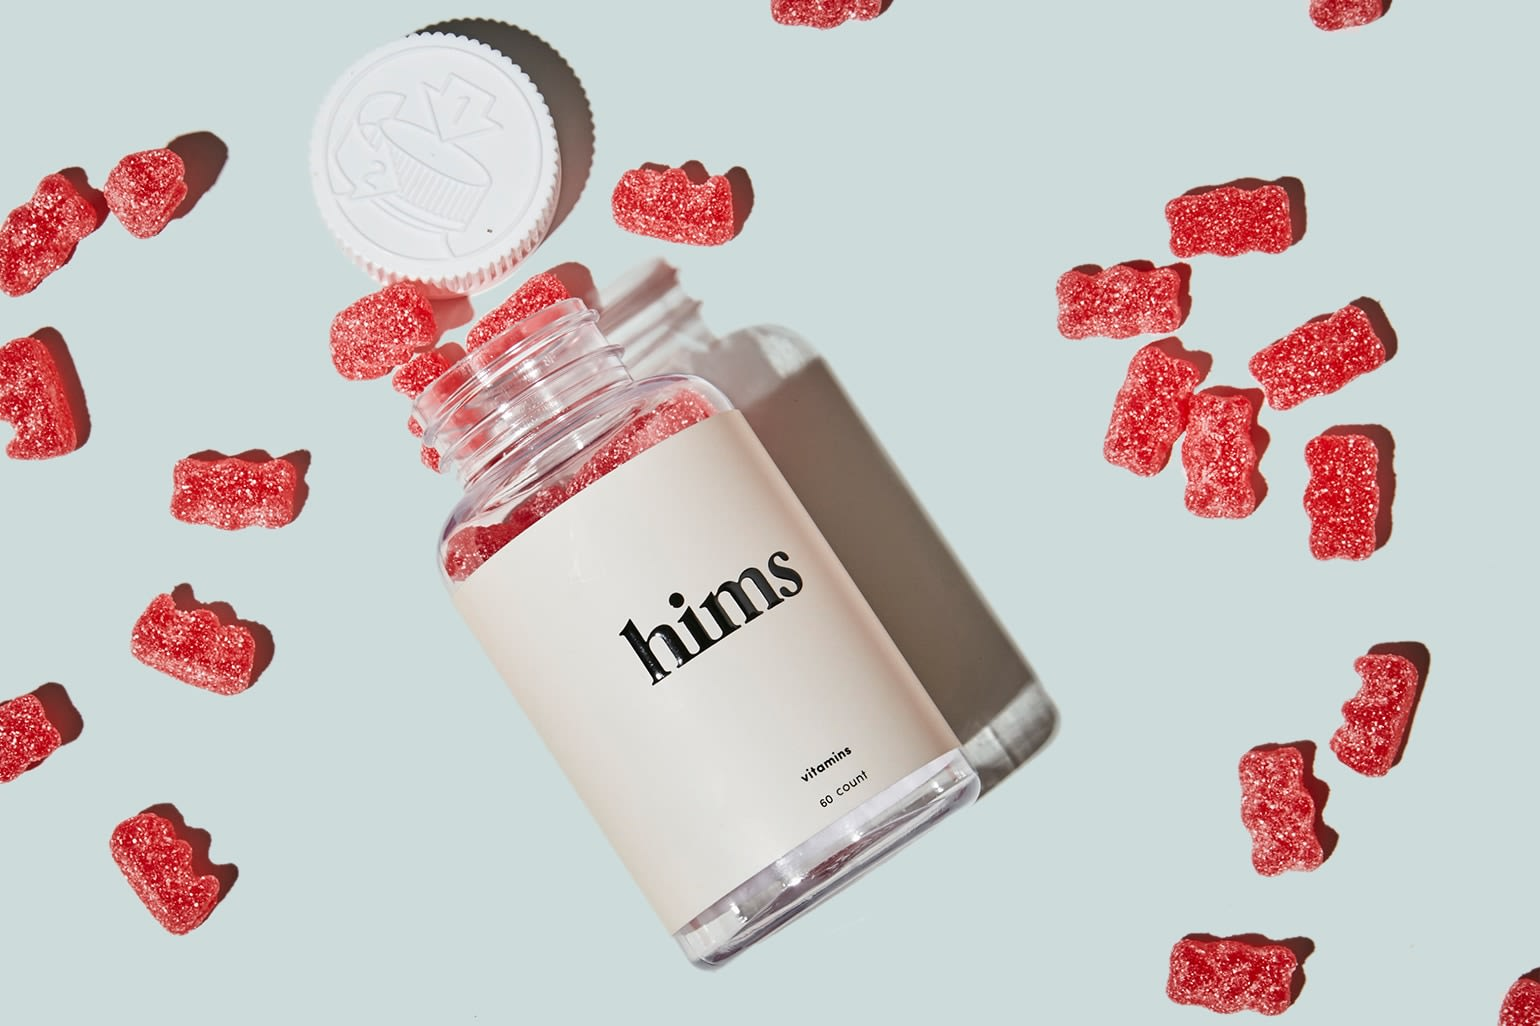 A bottle of red gummies on its side with the lid off and gummies spread around it